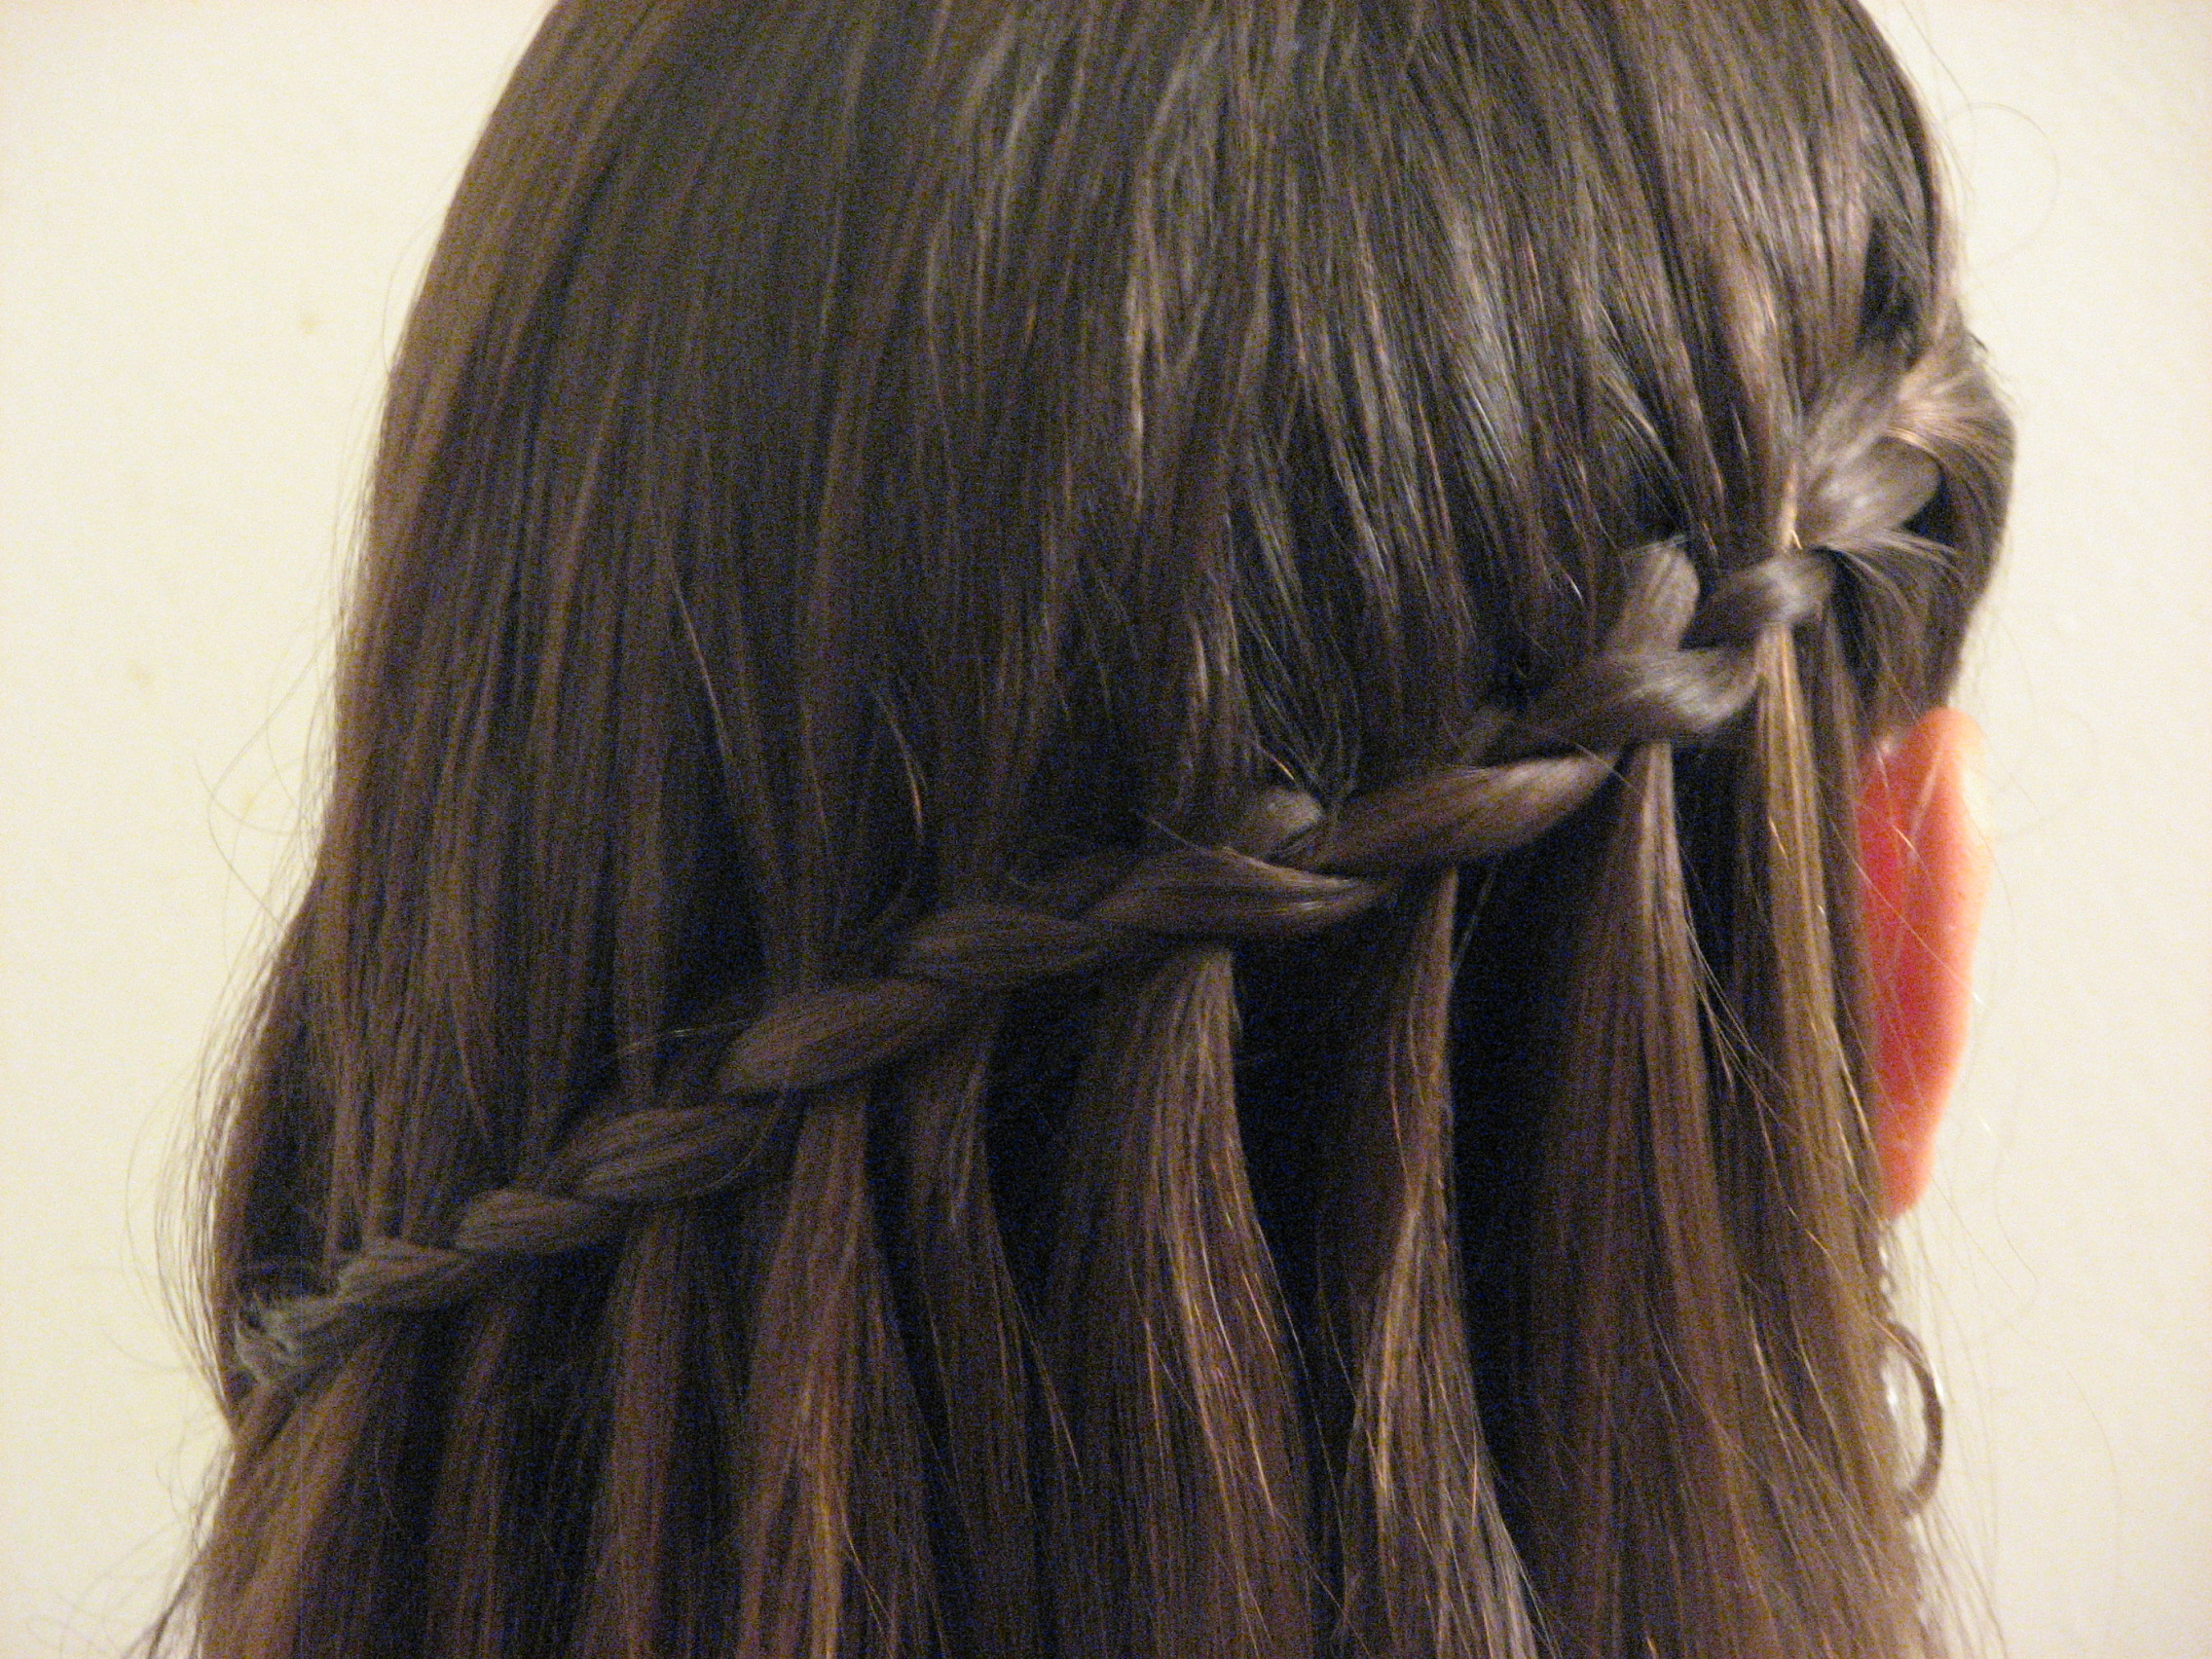 Hair Tutorial: Waterfall Braiding